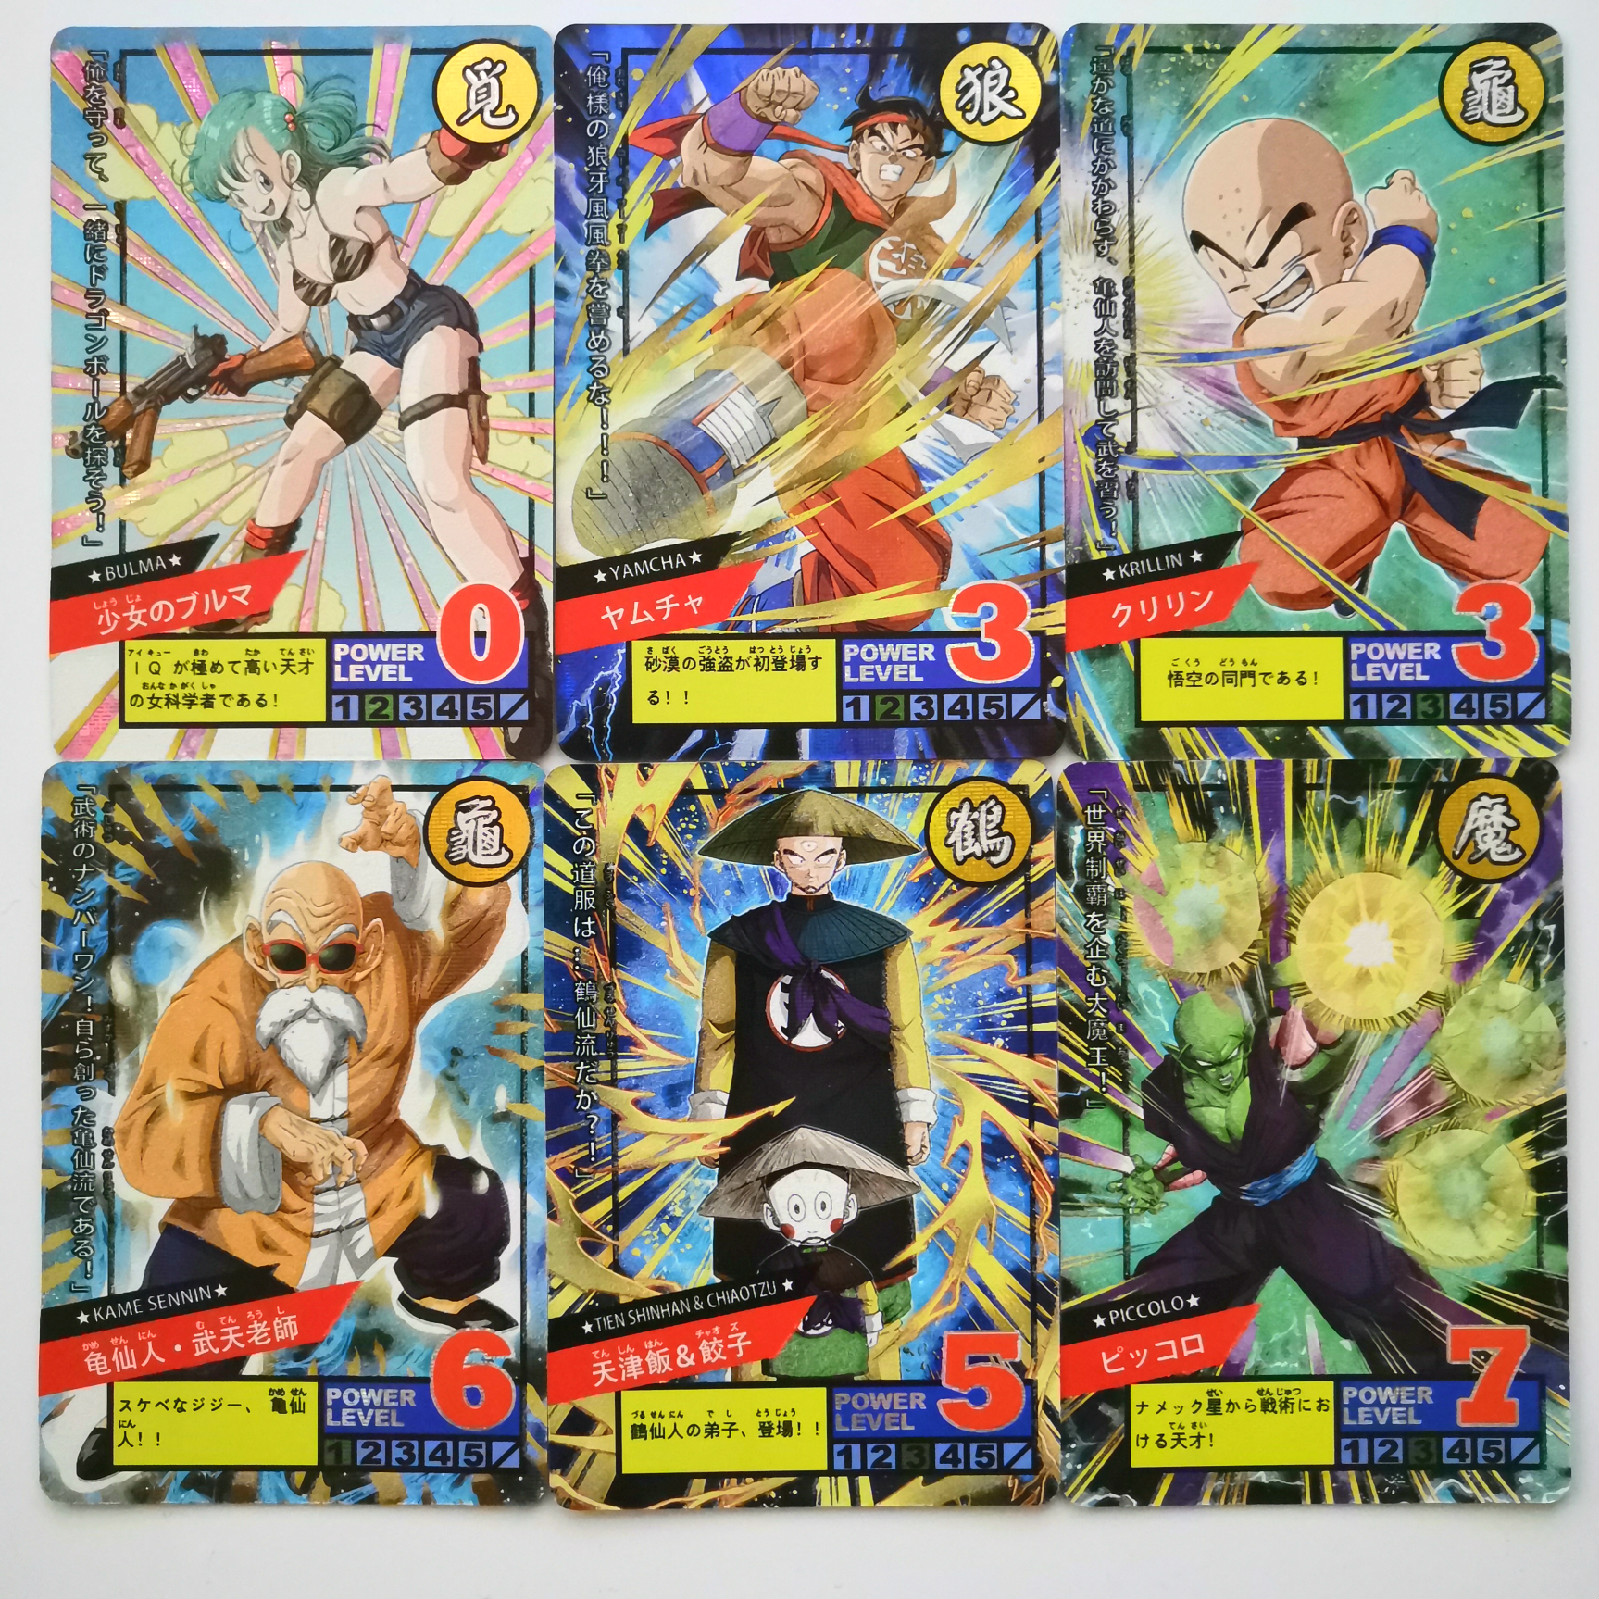 27pcs Super Dragon Ball Z Heroes Battle Luminous Card Ultra Instinct Goku Vegeta Game Collection Anime Cards